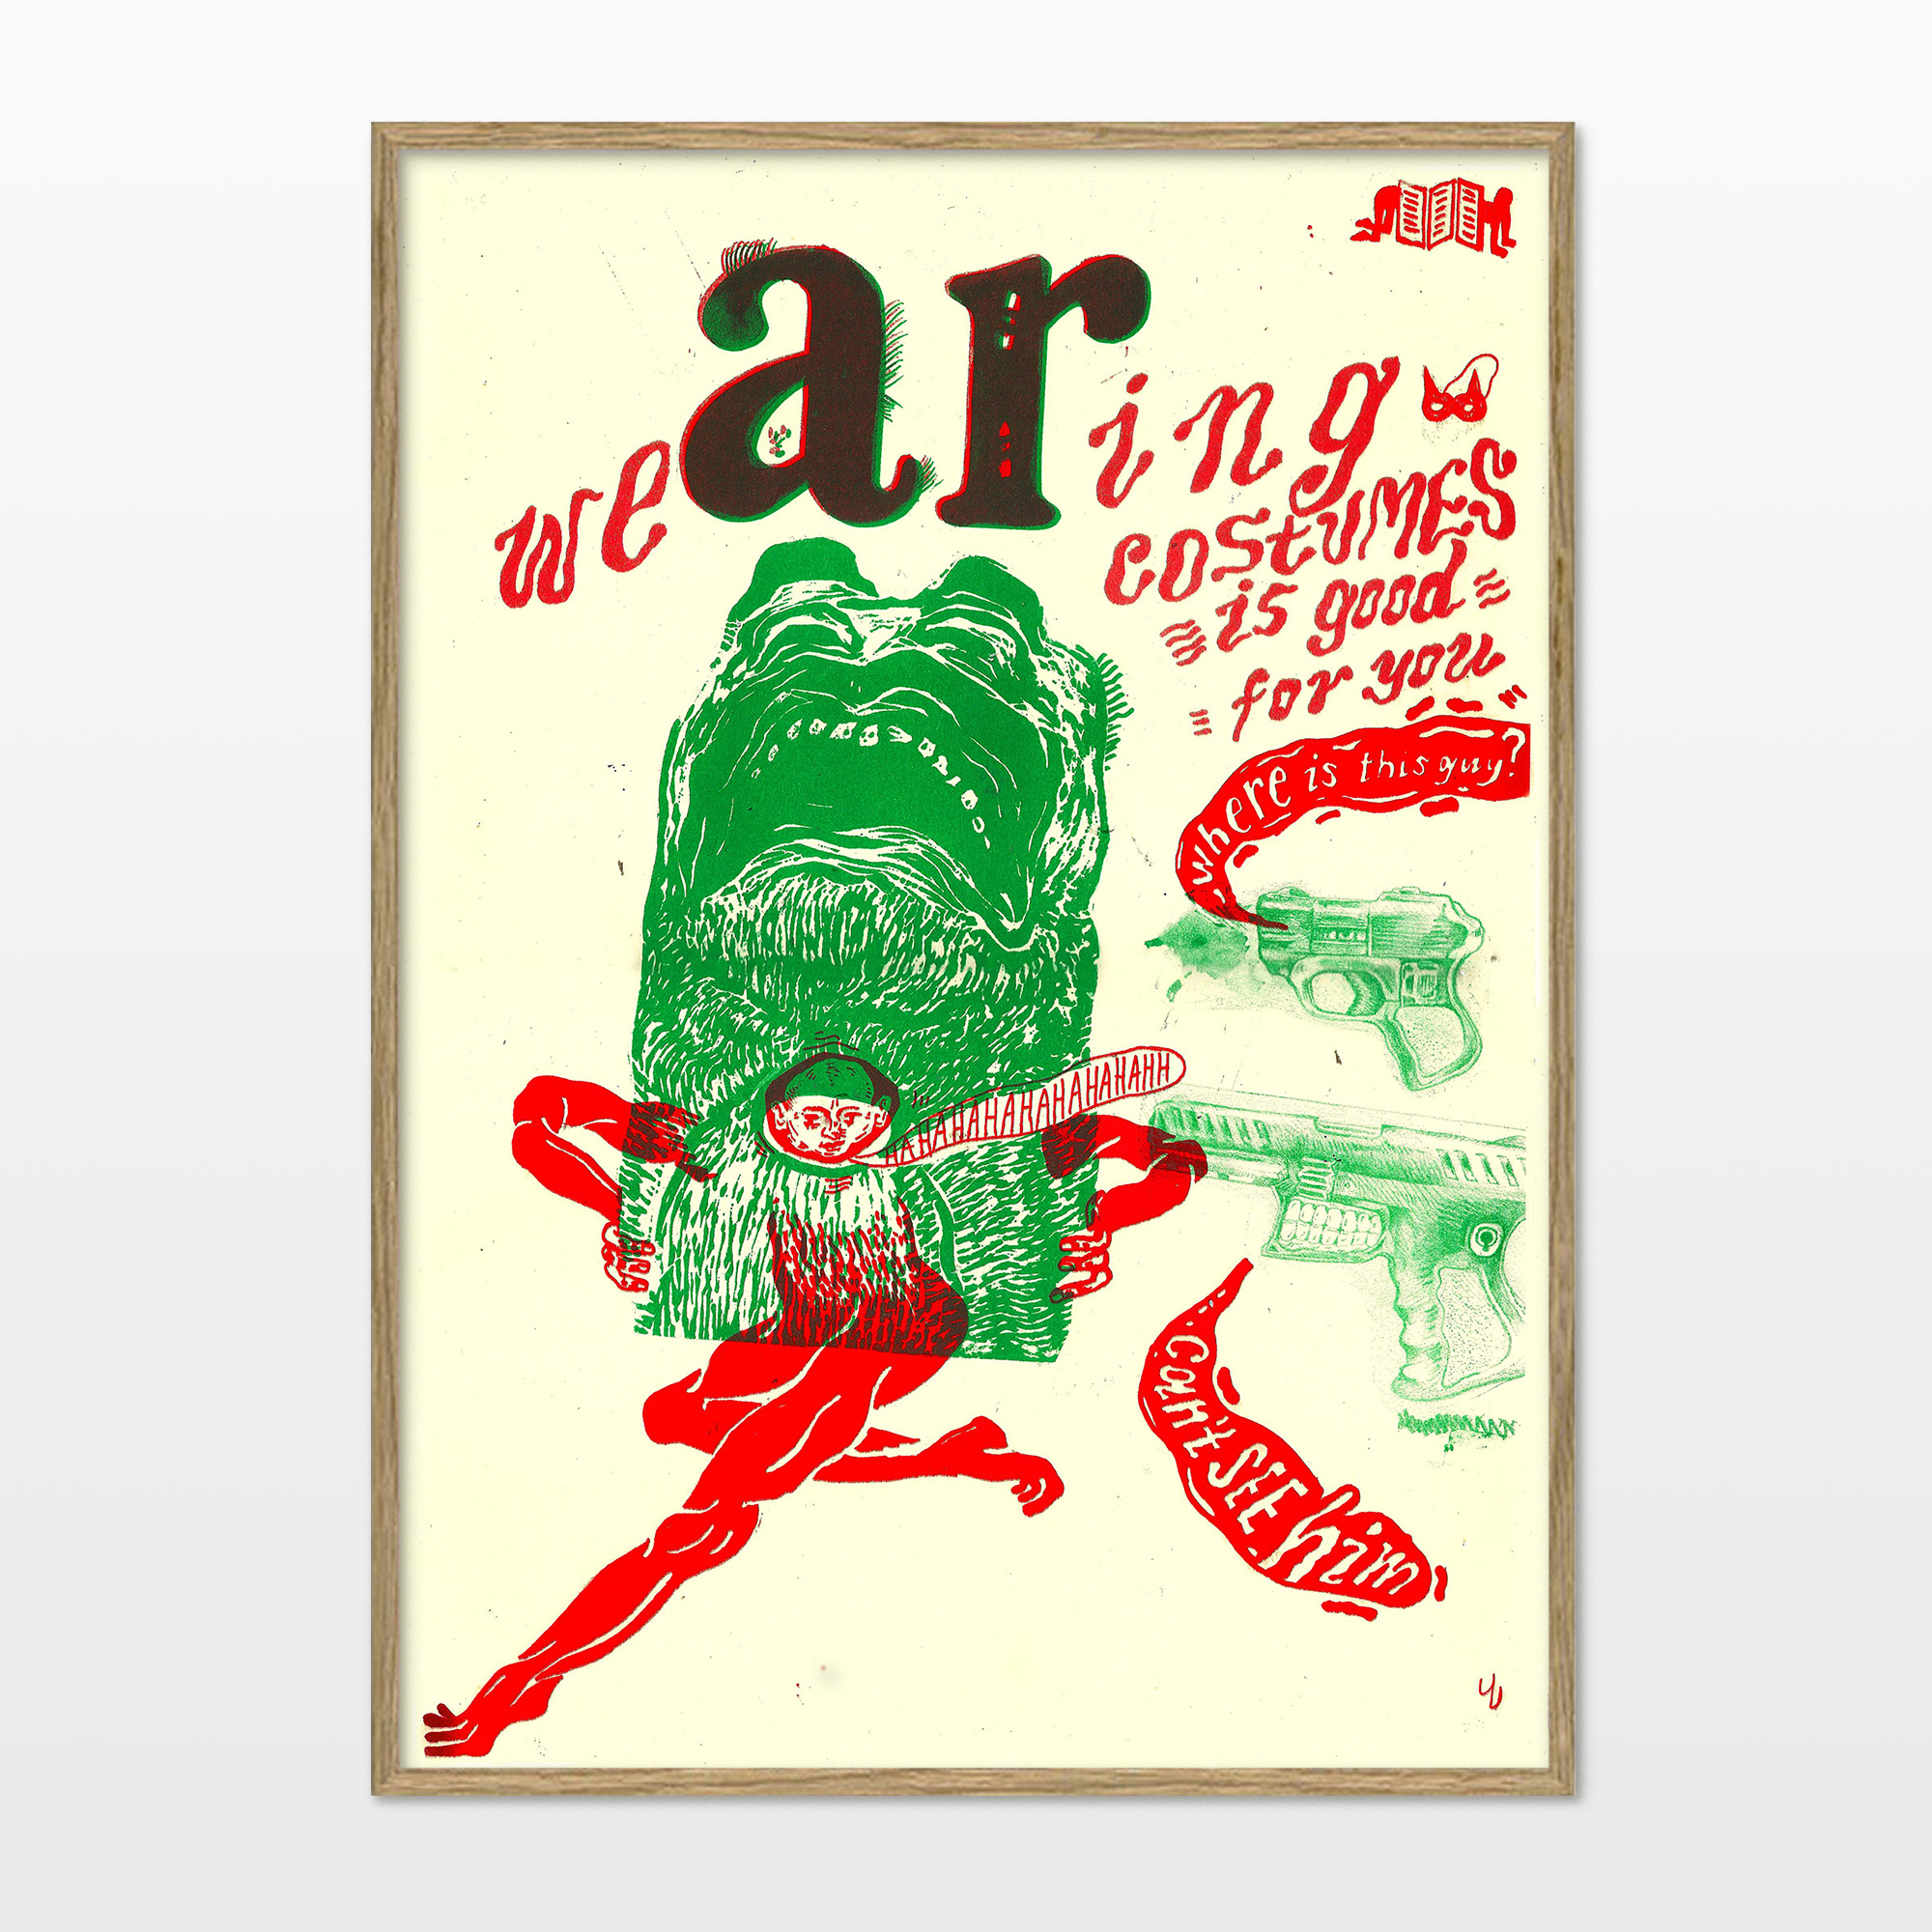 posters-prints, giclee-print, colorful, figurative, graphical, illustrative, pop, animals, bodies, cartoons, people, wildlife, beige, green, red, ink, paper, amusing, contemporary-art, decorative, design, fantasy, interior, interior-design, modern, modern-art, pop-art, posters, prints, weird, Buy original high quality art. Paintings, drawings, limited edition prints & posters by talented artists.